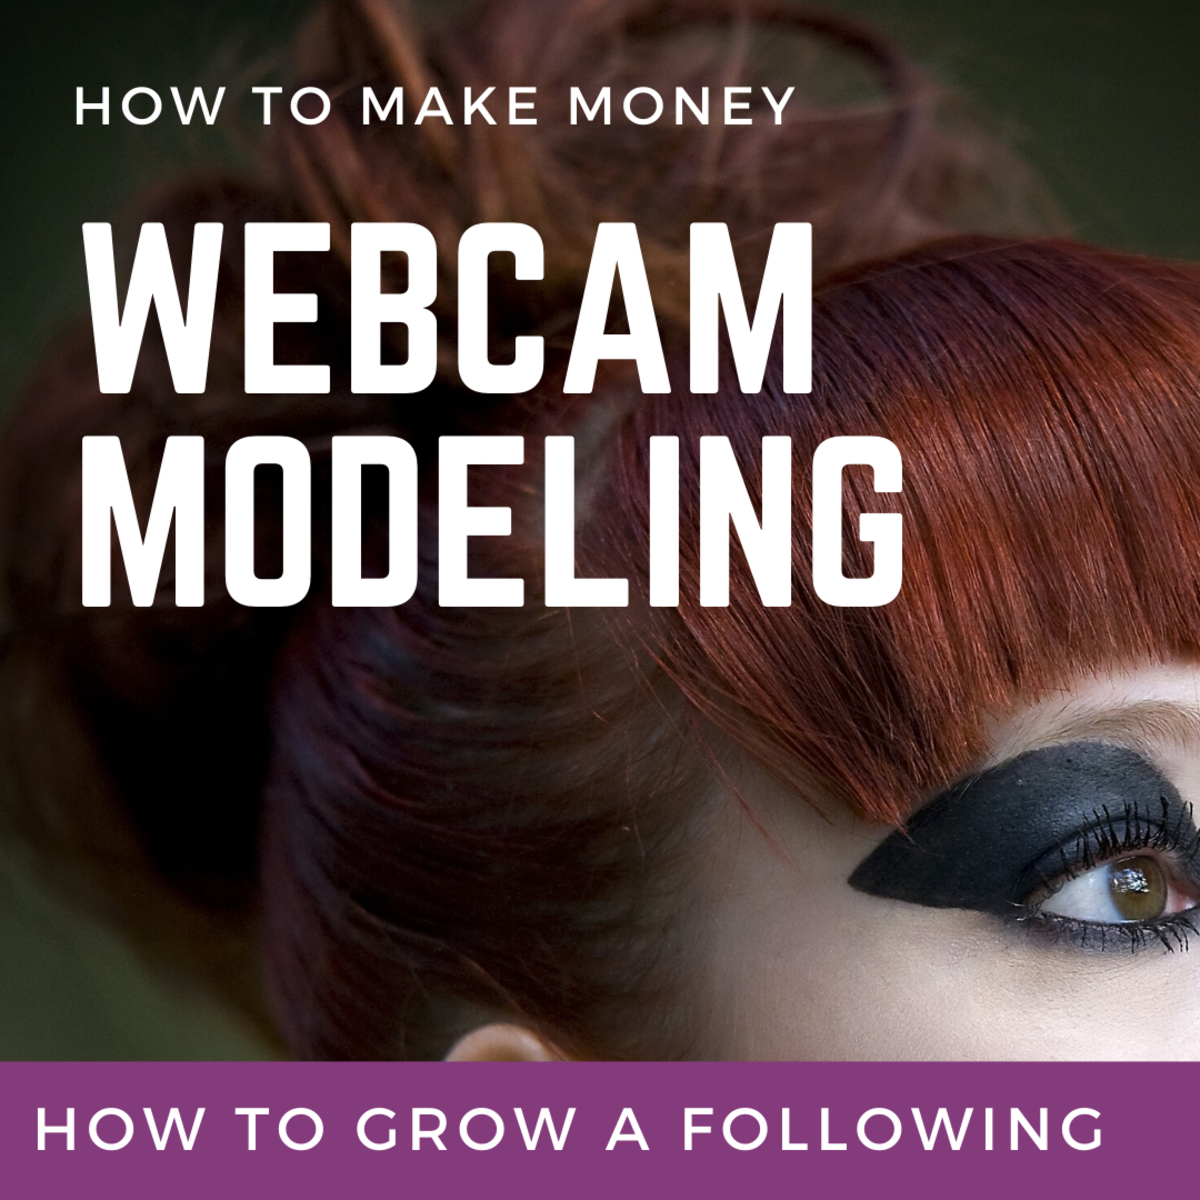 Learn how to develop your brand and make money webcam modeling the smart way.